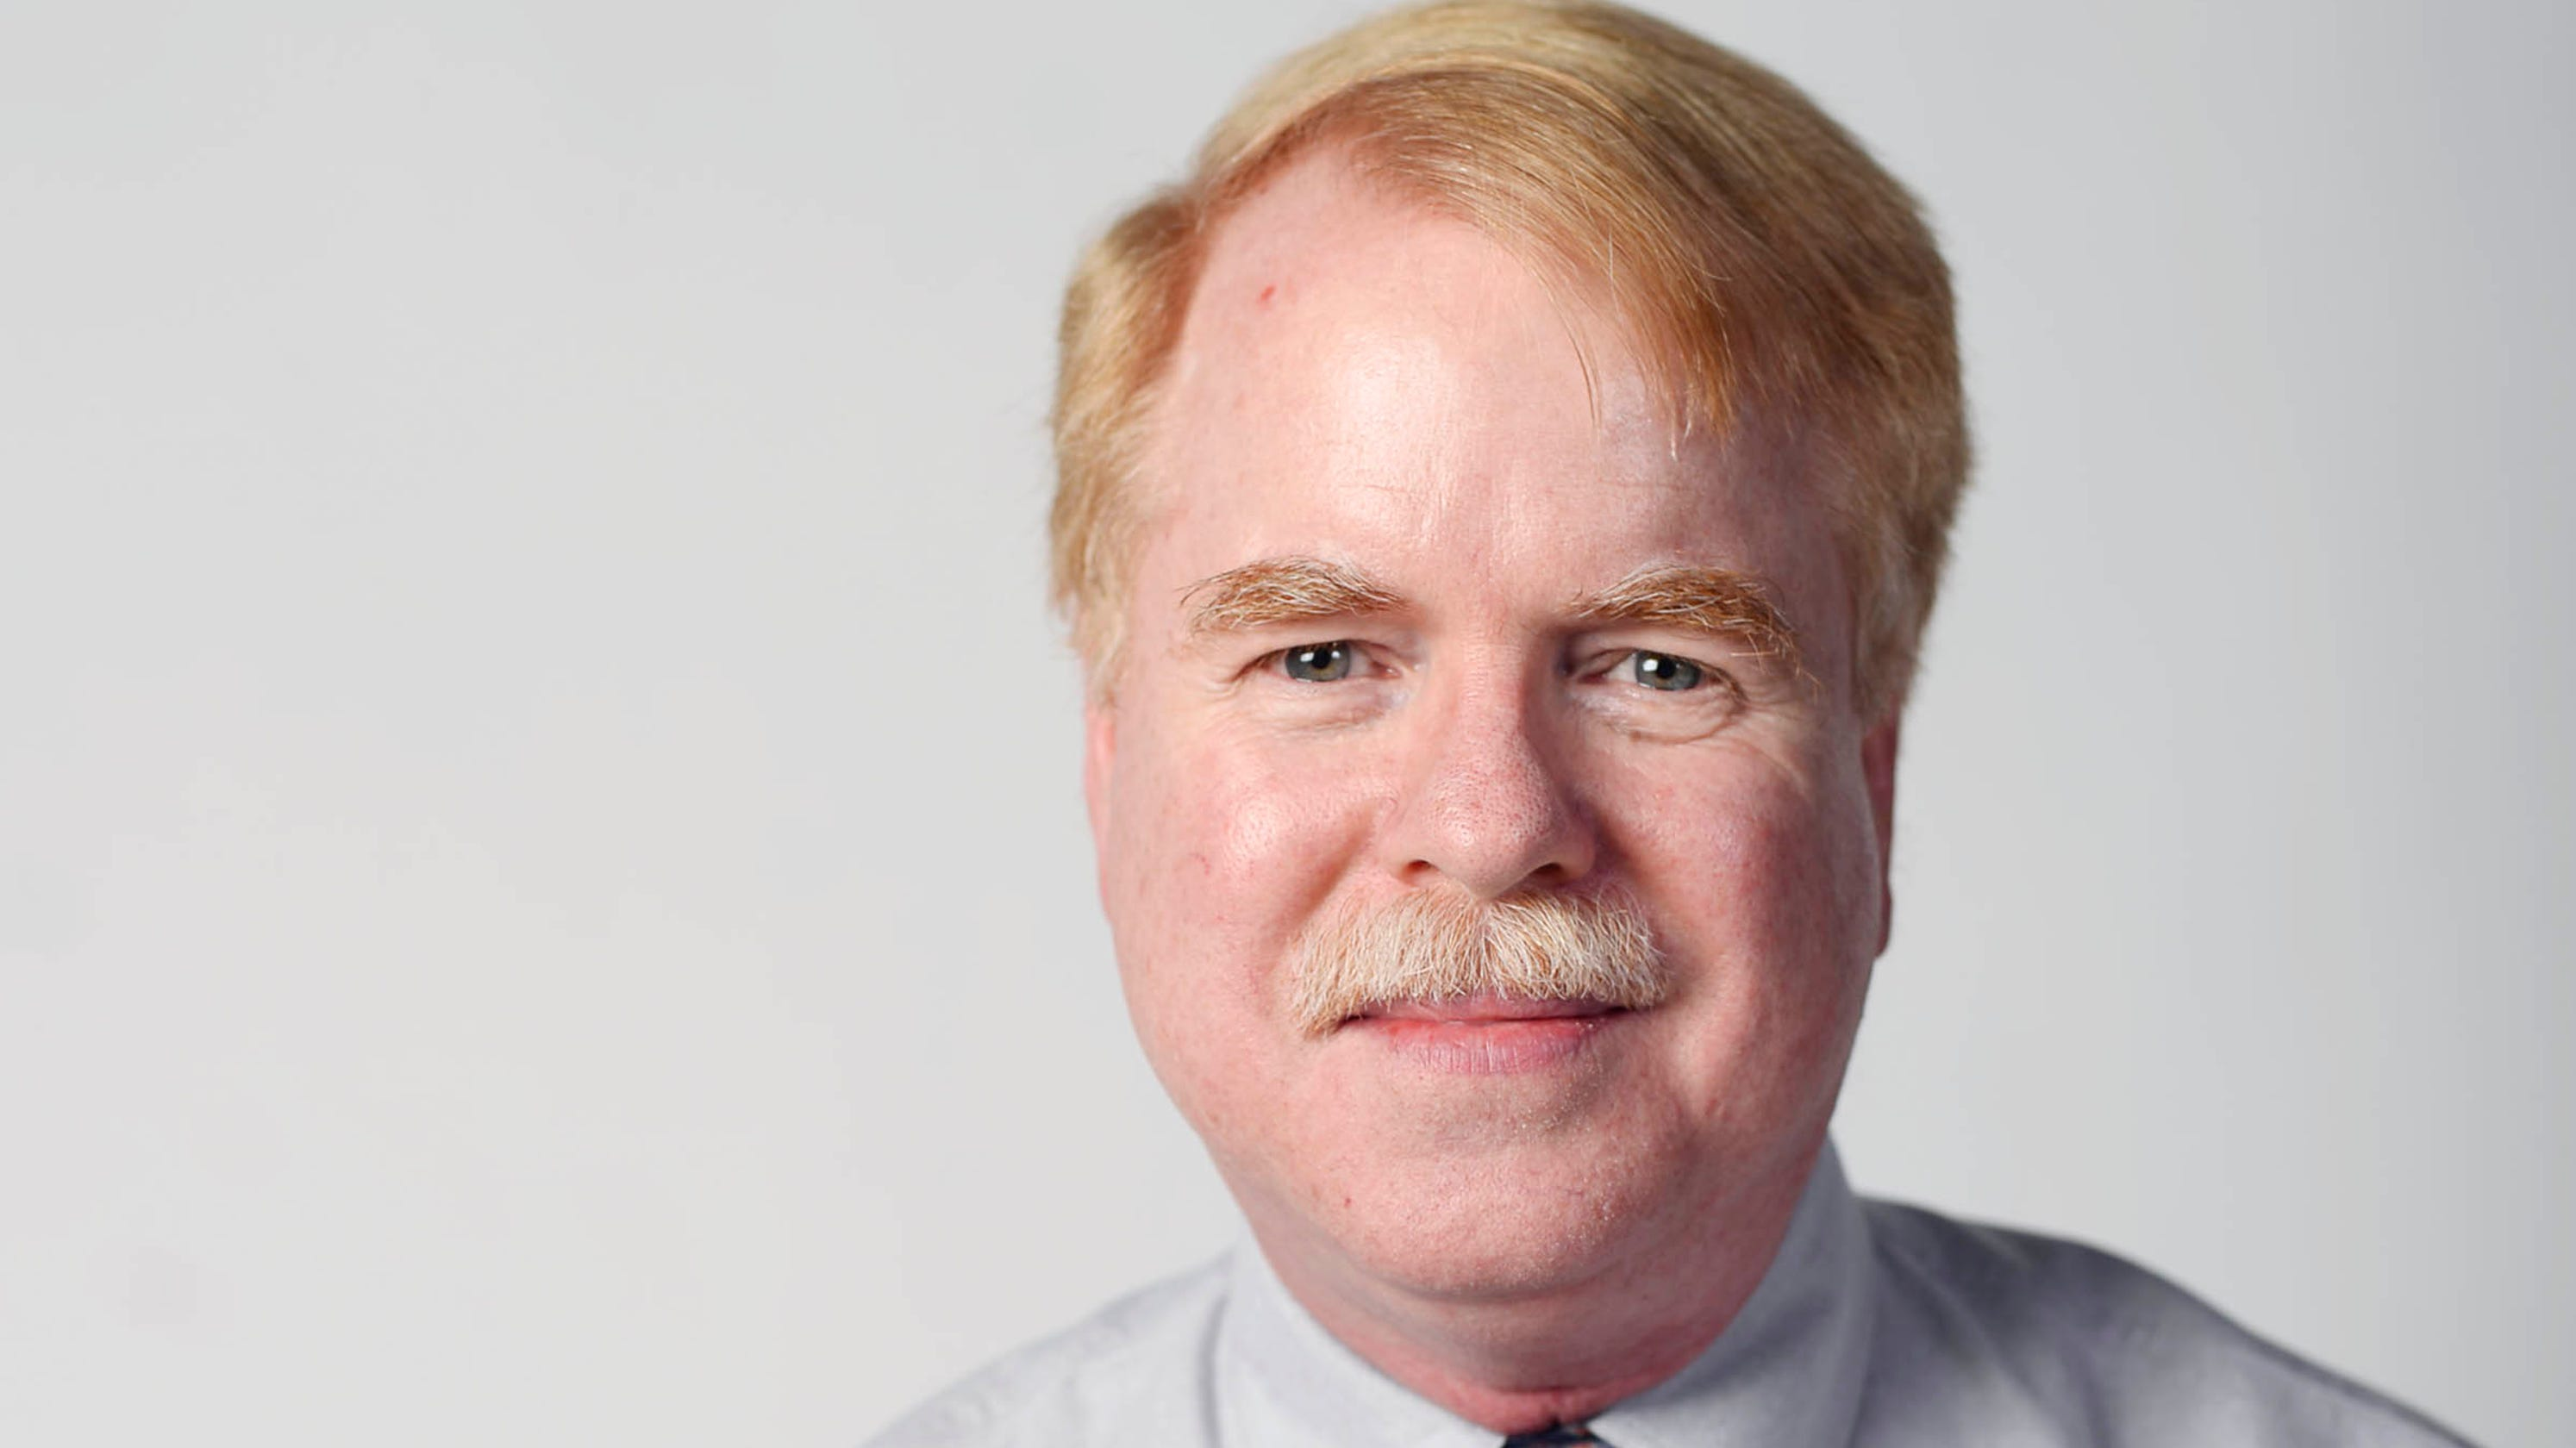 York Daily Record Editor Jim McClure To Retire After 30 Years